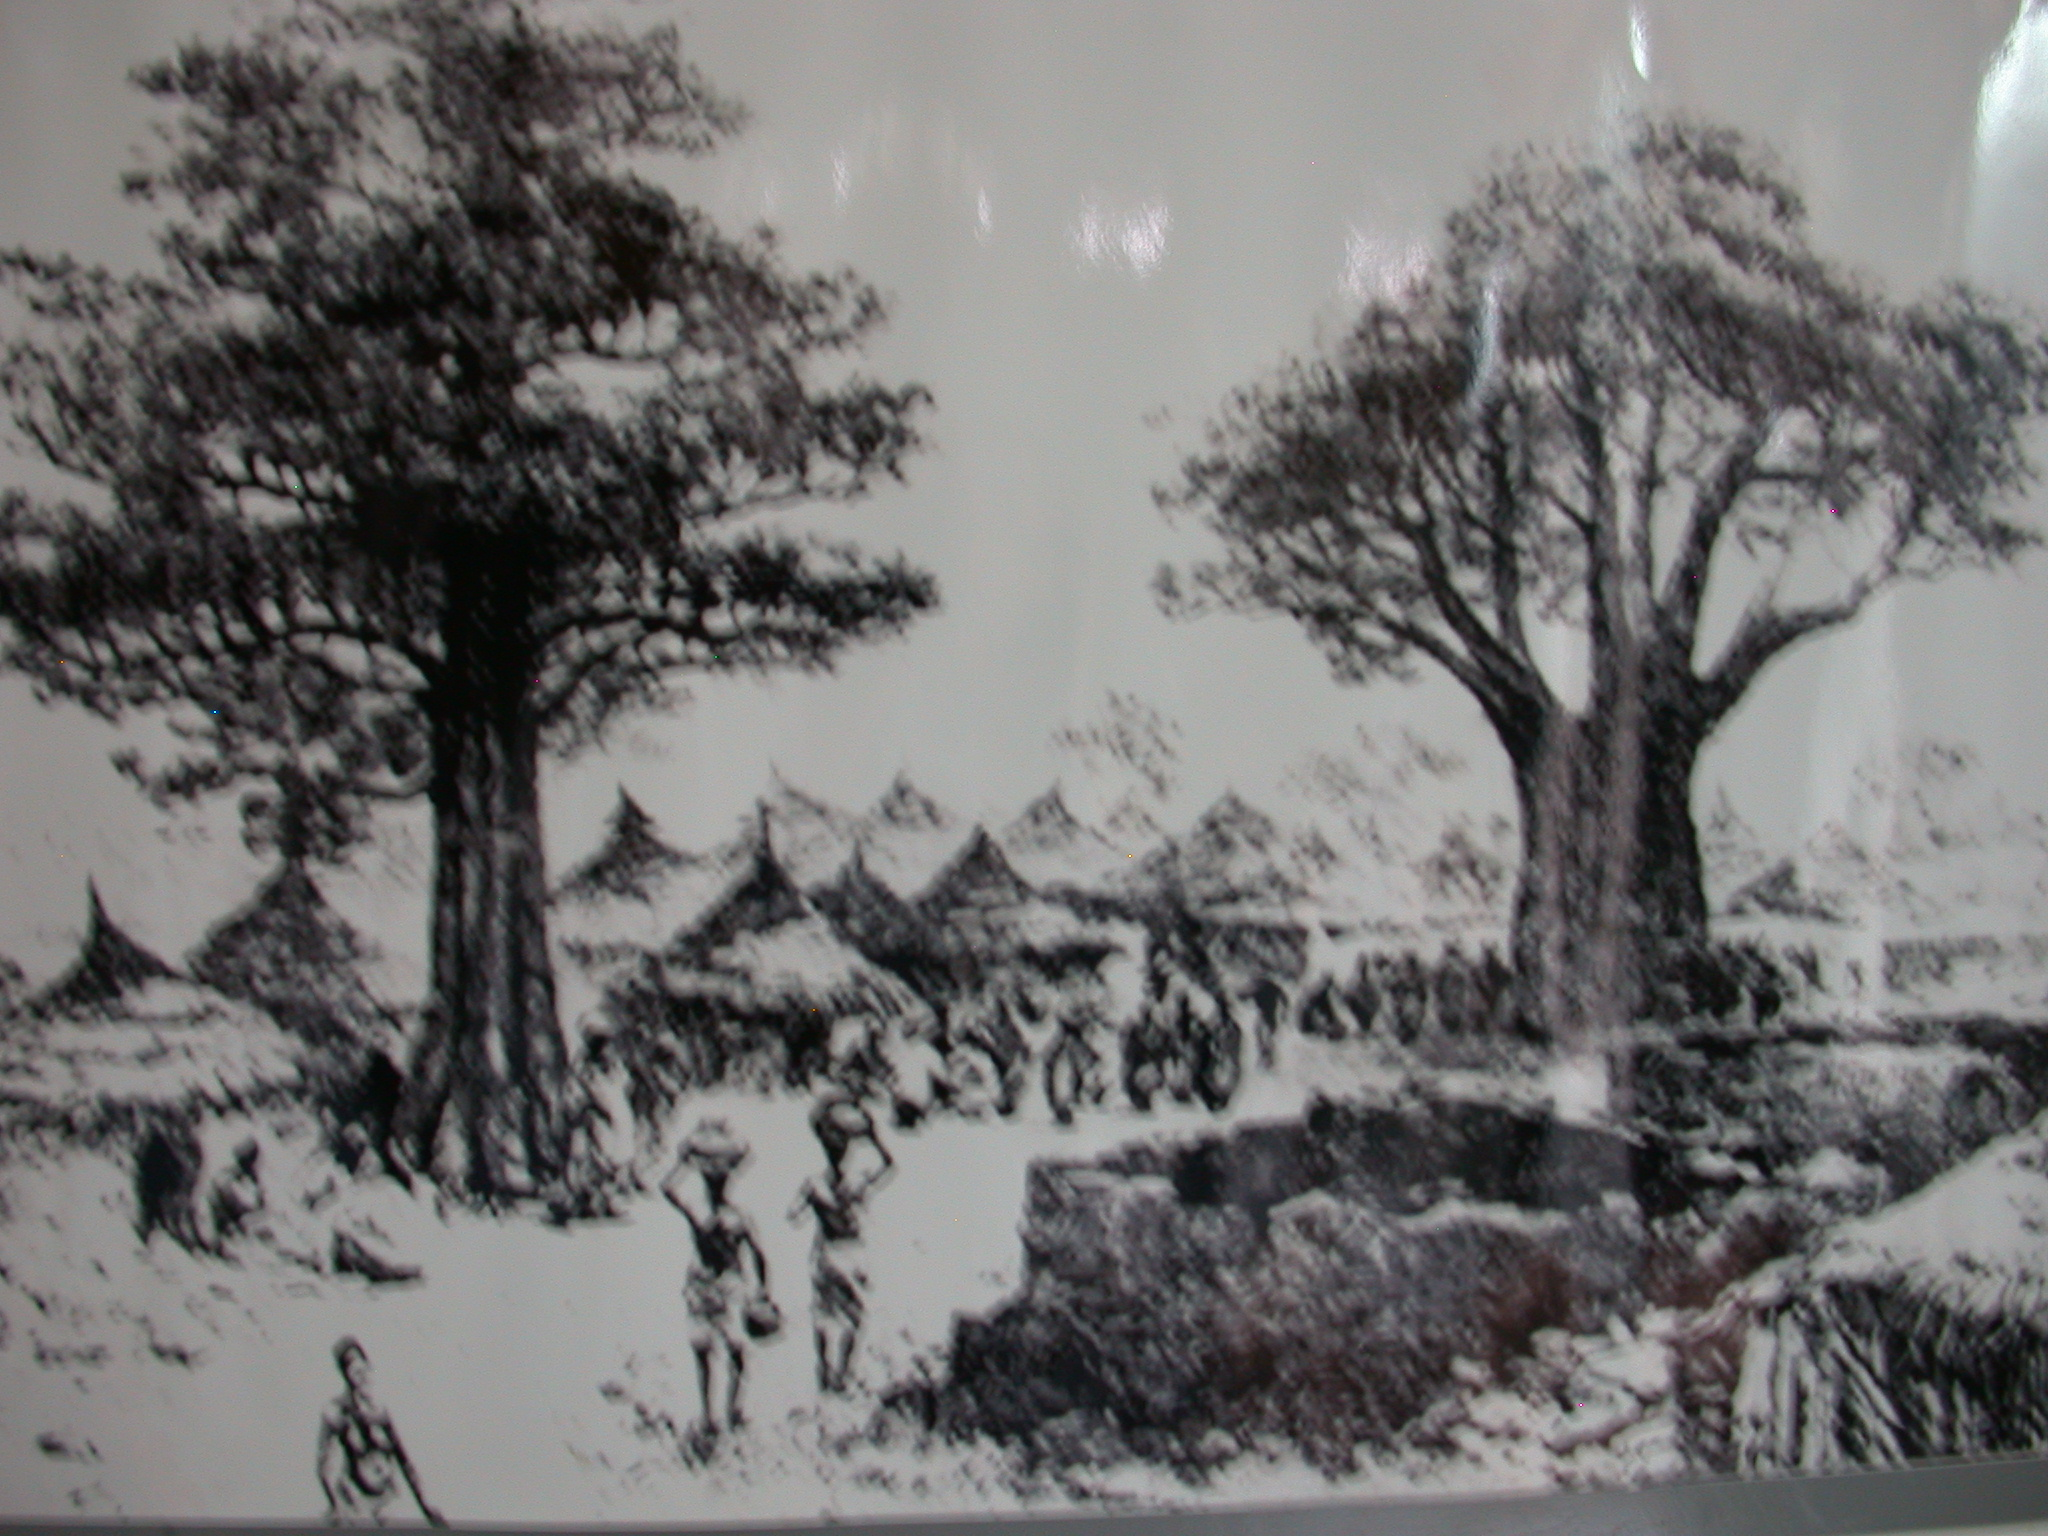 Picture of Slave Market at Baobab Tree in Salaga Circa 1888, National Museum, Accra, Ghana